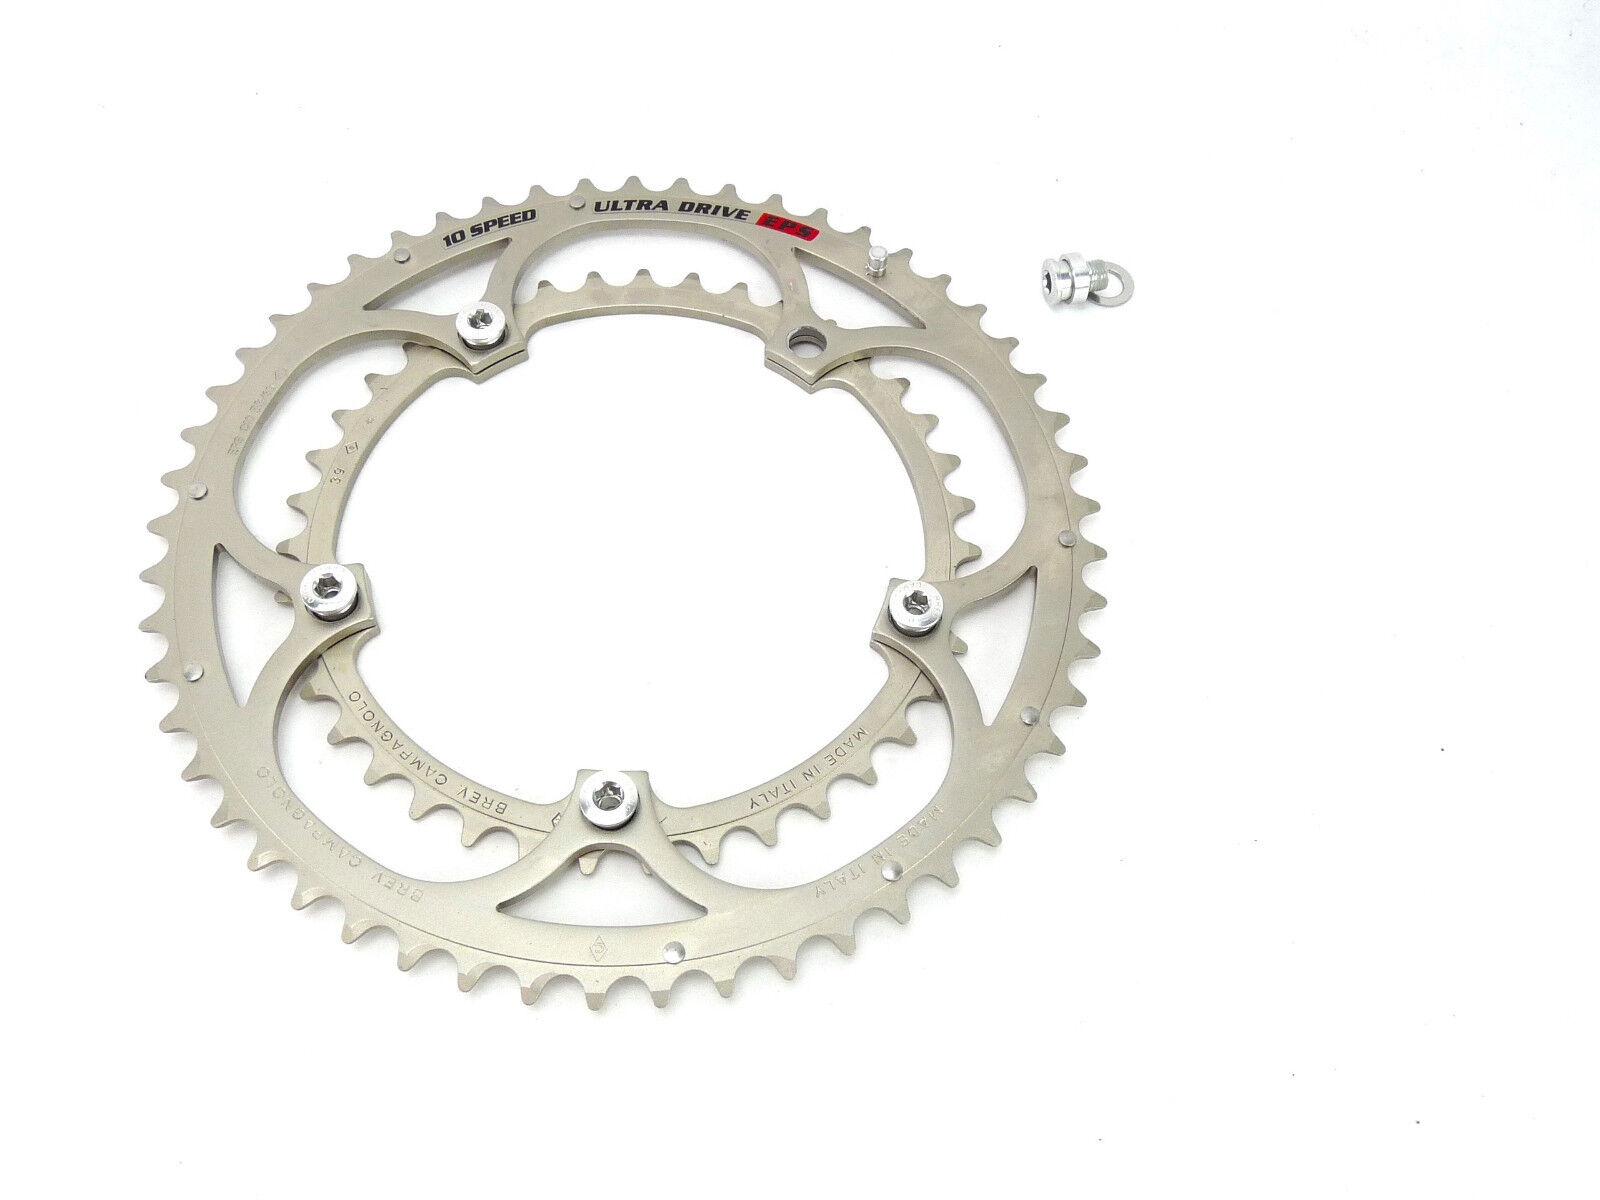 Campagnolo Record  10 speed Chainring set 53 39T Ultra Drive EPS W BOLTS NOS  discount